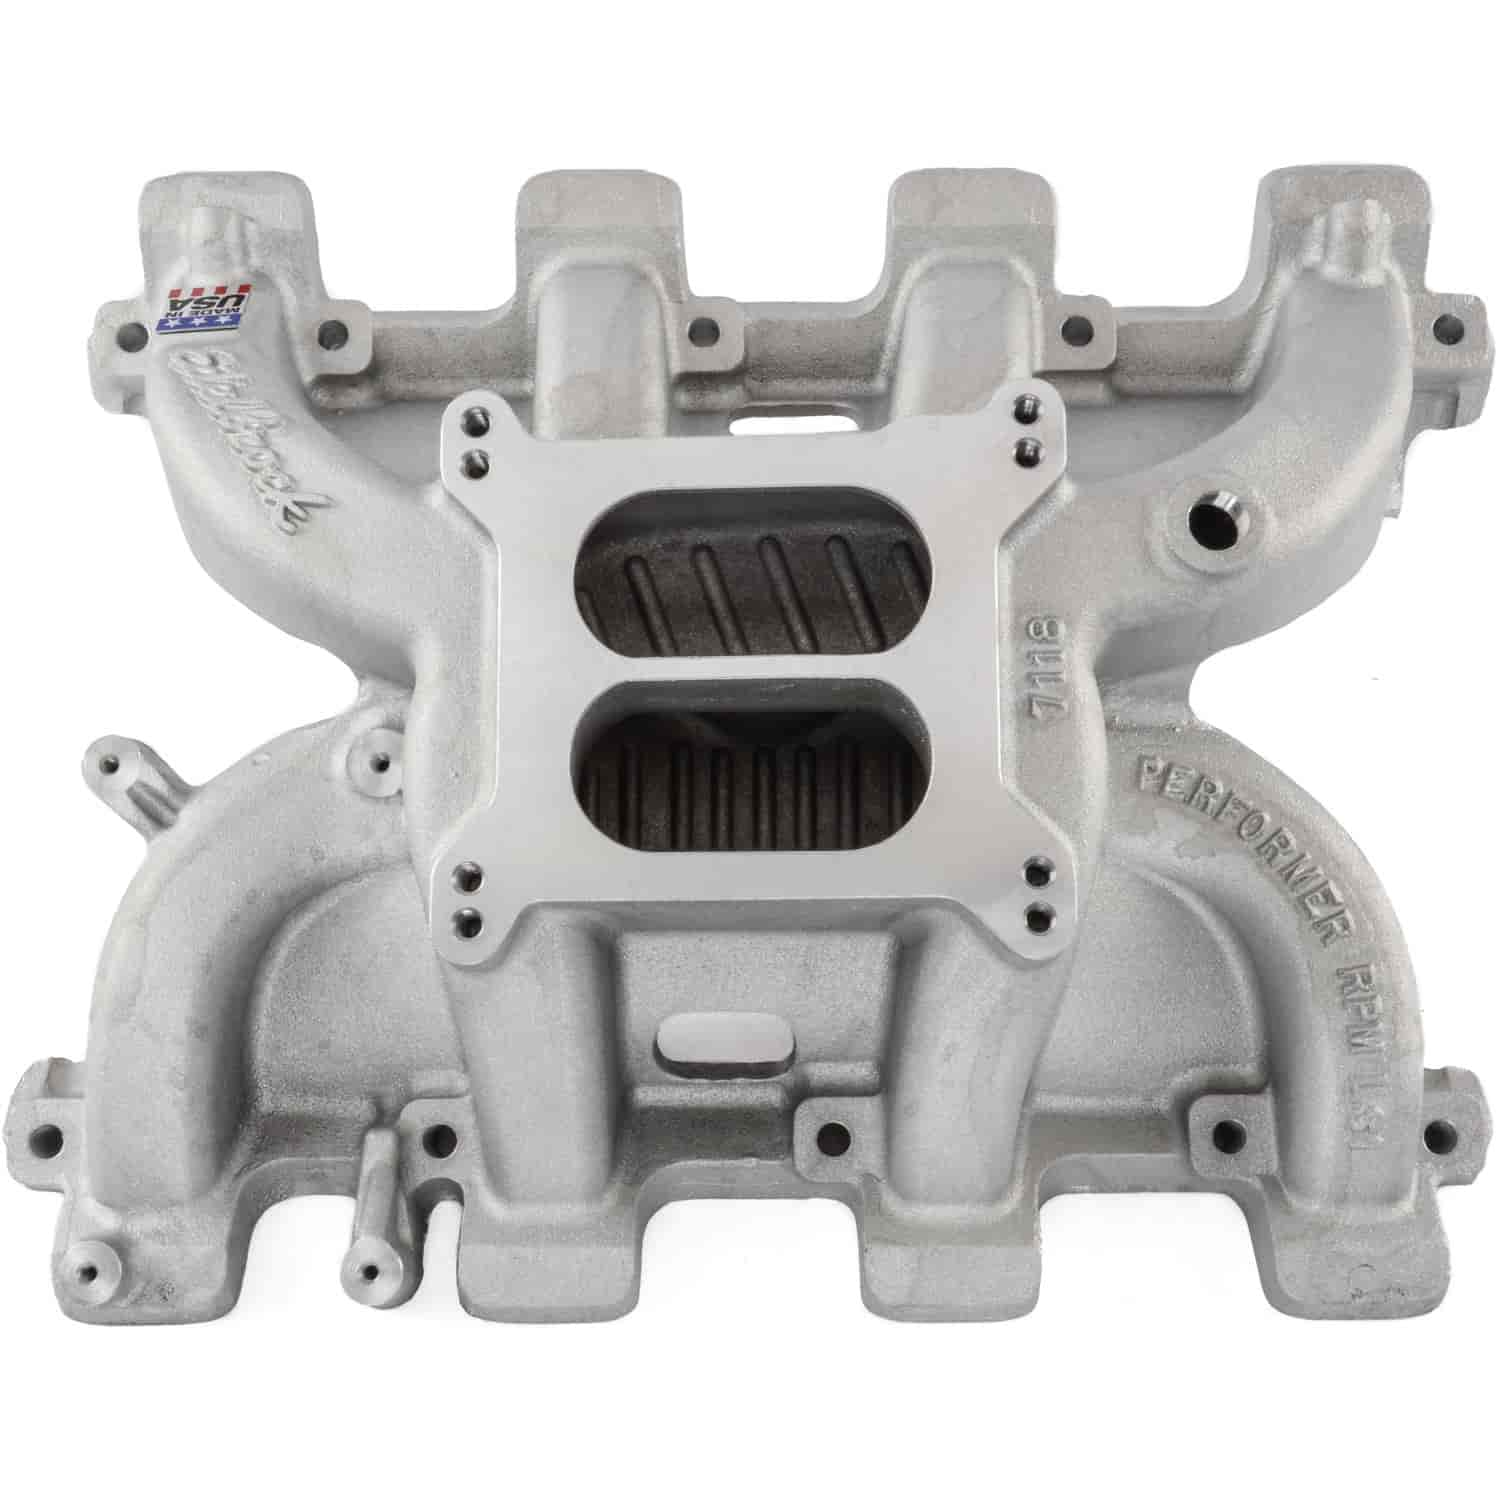 Edelbrock 711871 - Edelbrock Performer RPM Manifolds & Kits for Chevrolet